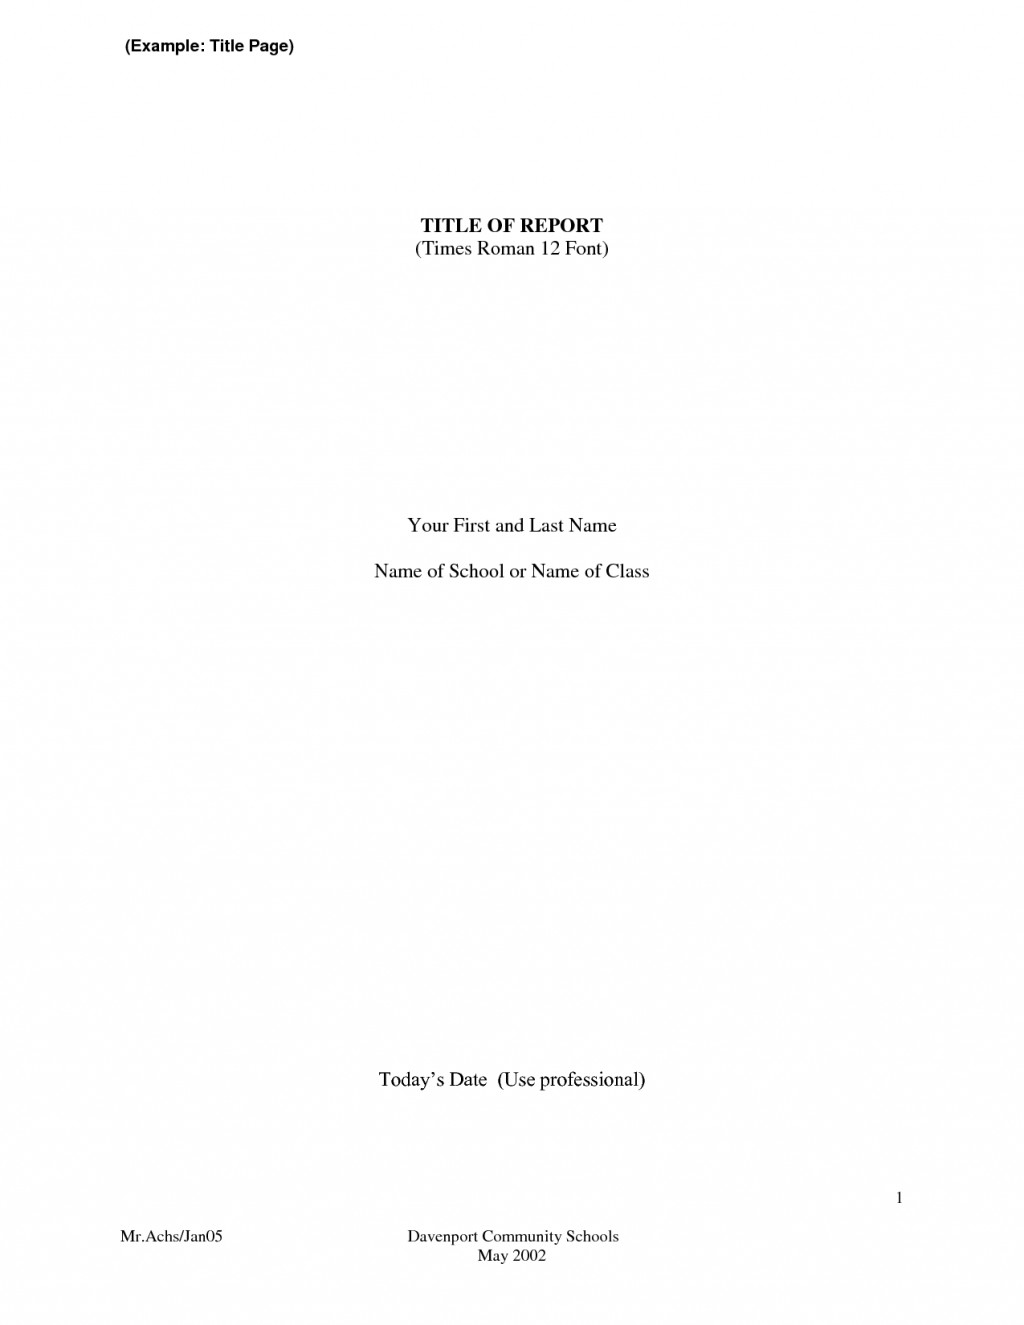 007 Research Paper Brilliant Ideas Of Title Page Example Apa Format Sample Cover For Amazing Titles First Unique Mla Style The A Large